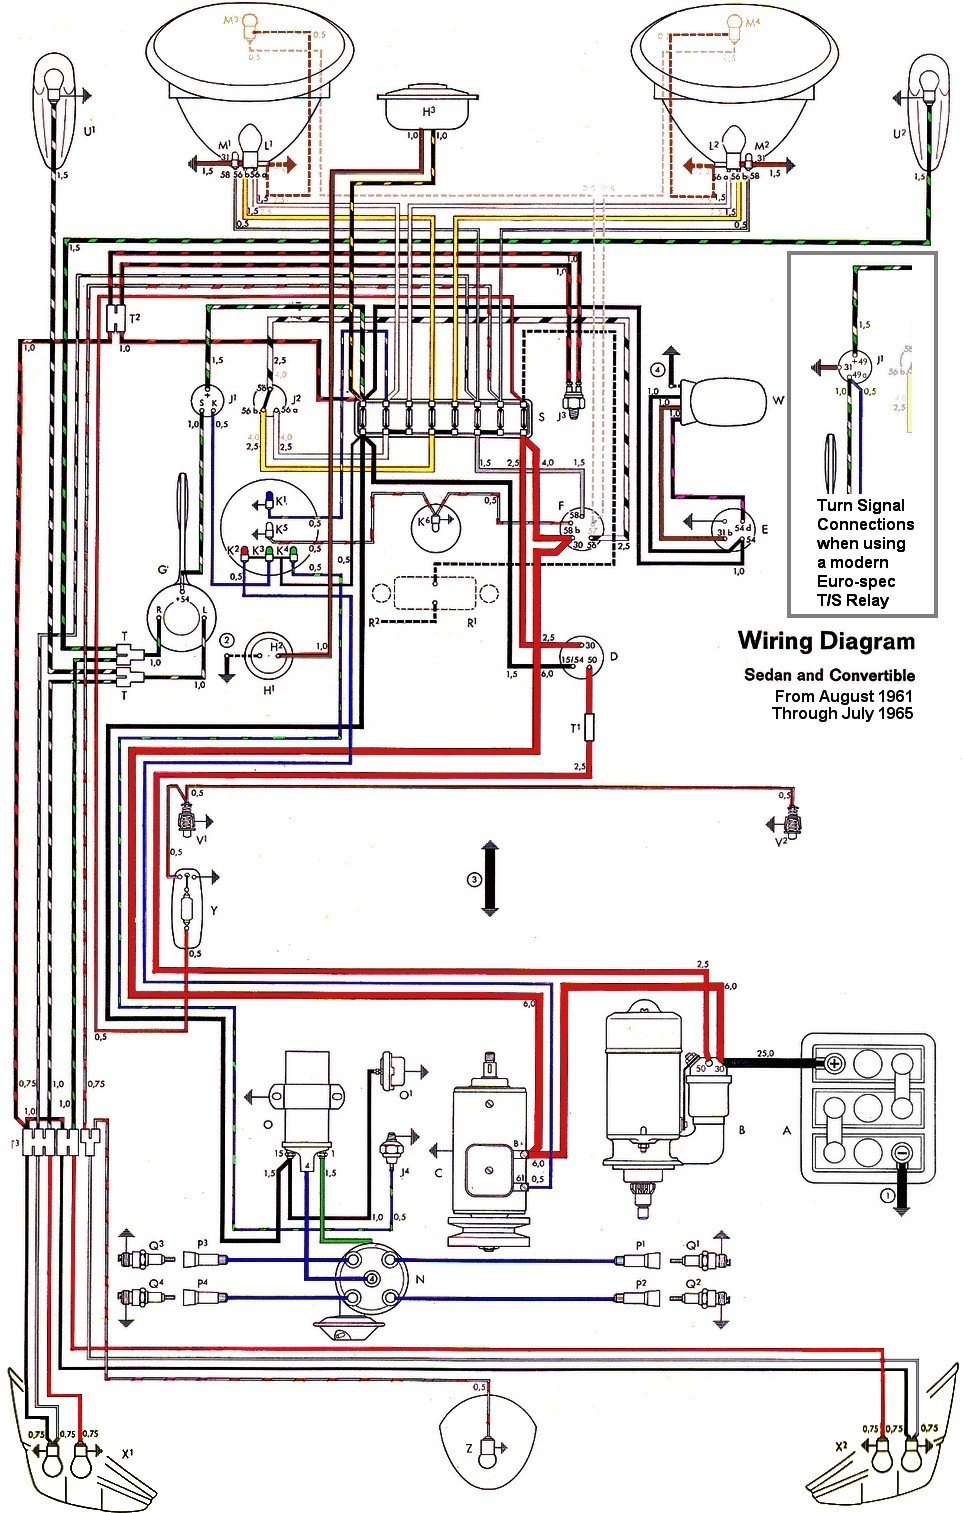 vw beetle wiring diagram vw wiring diagrams online thesamba com type 1 wiring diagrams